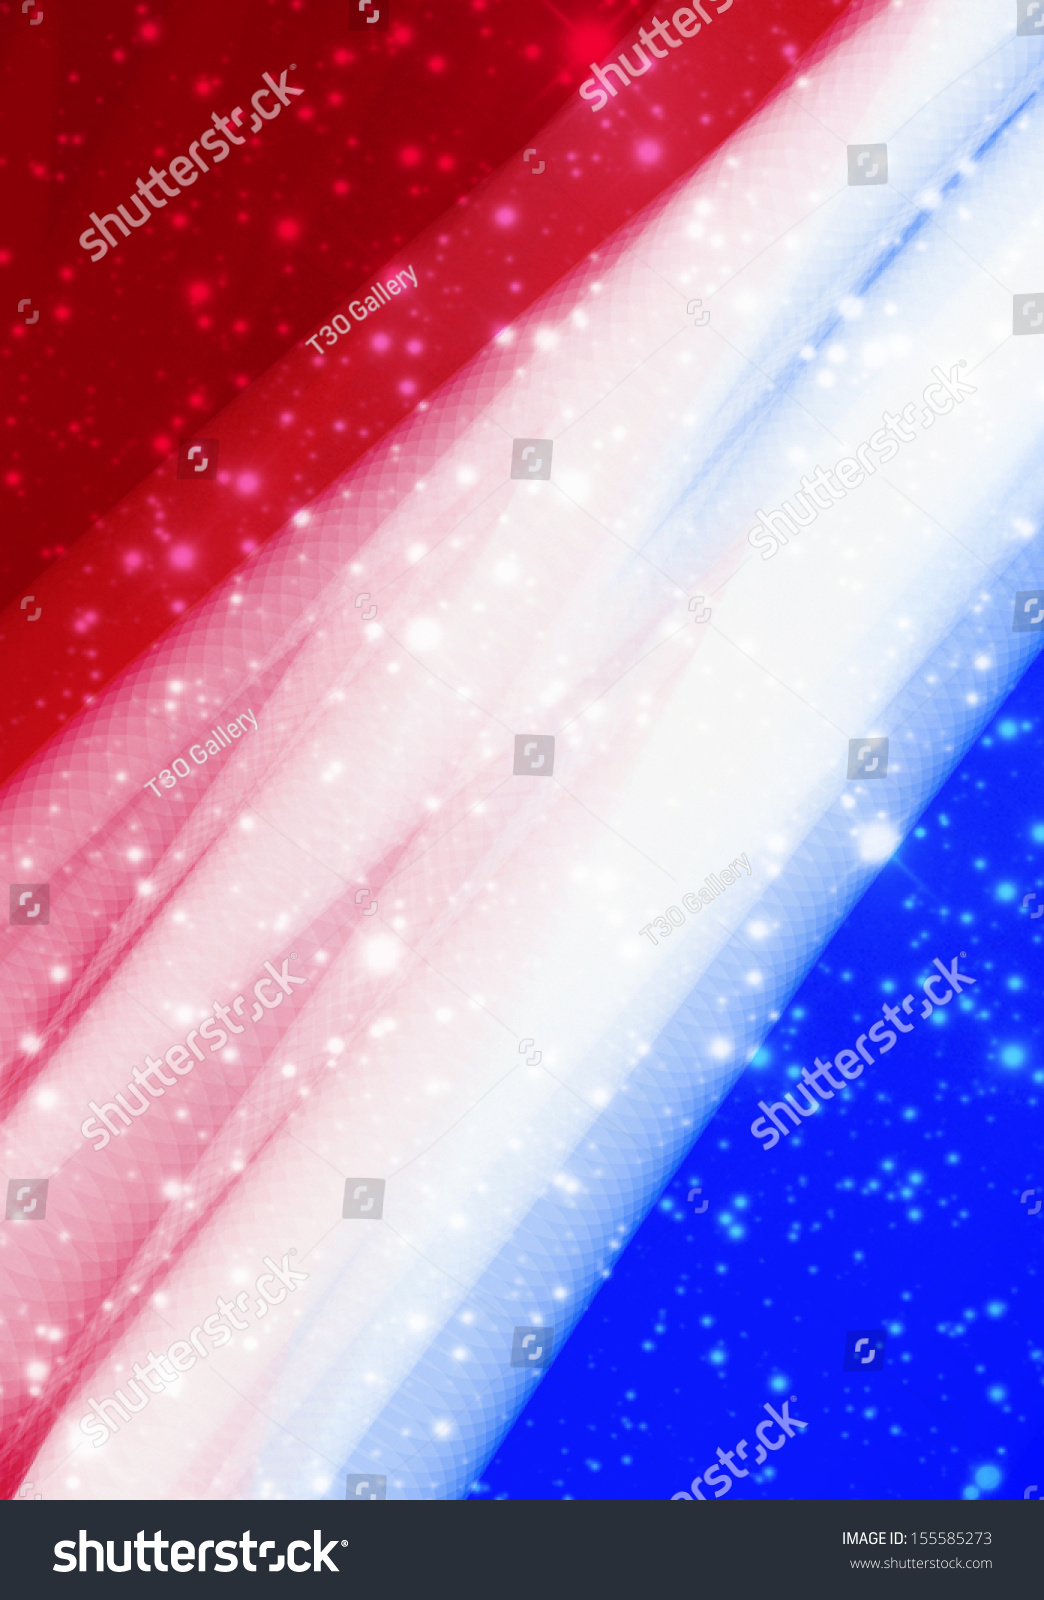 Red white blue sparkle background stock illustration for Red white and blue wallpaper